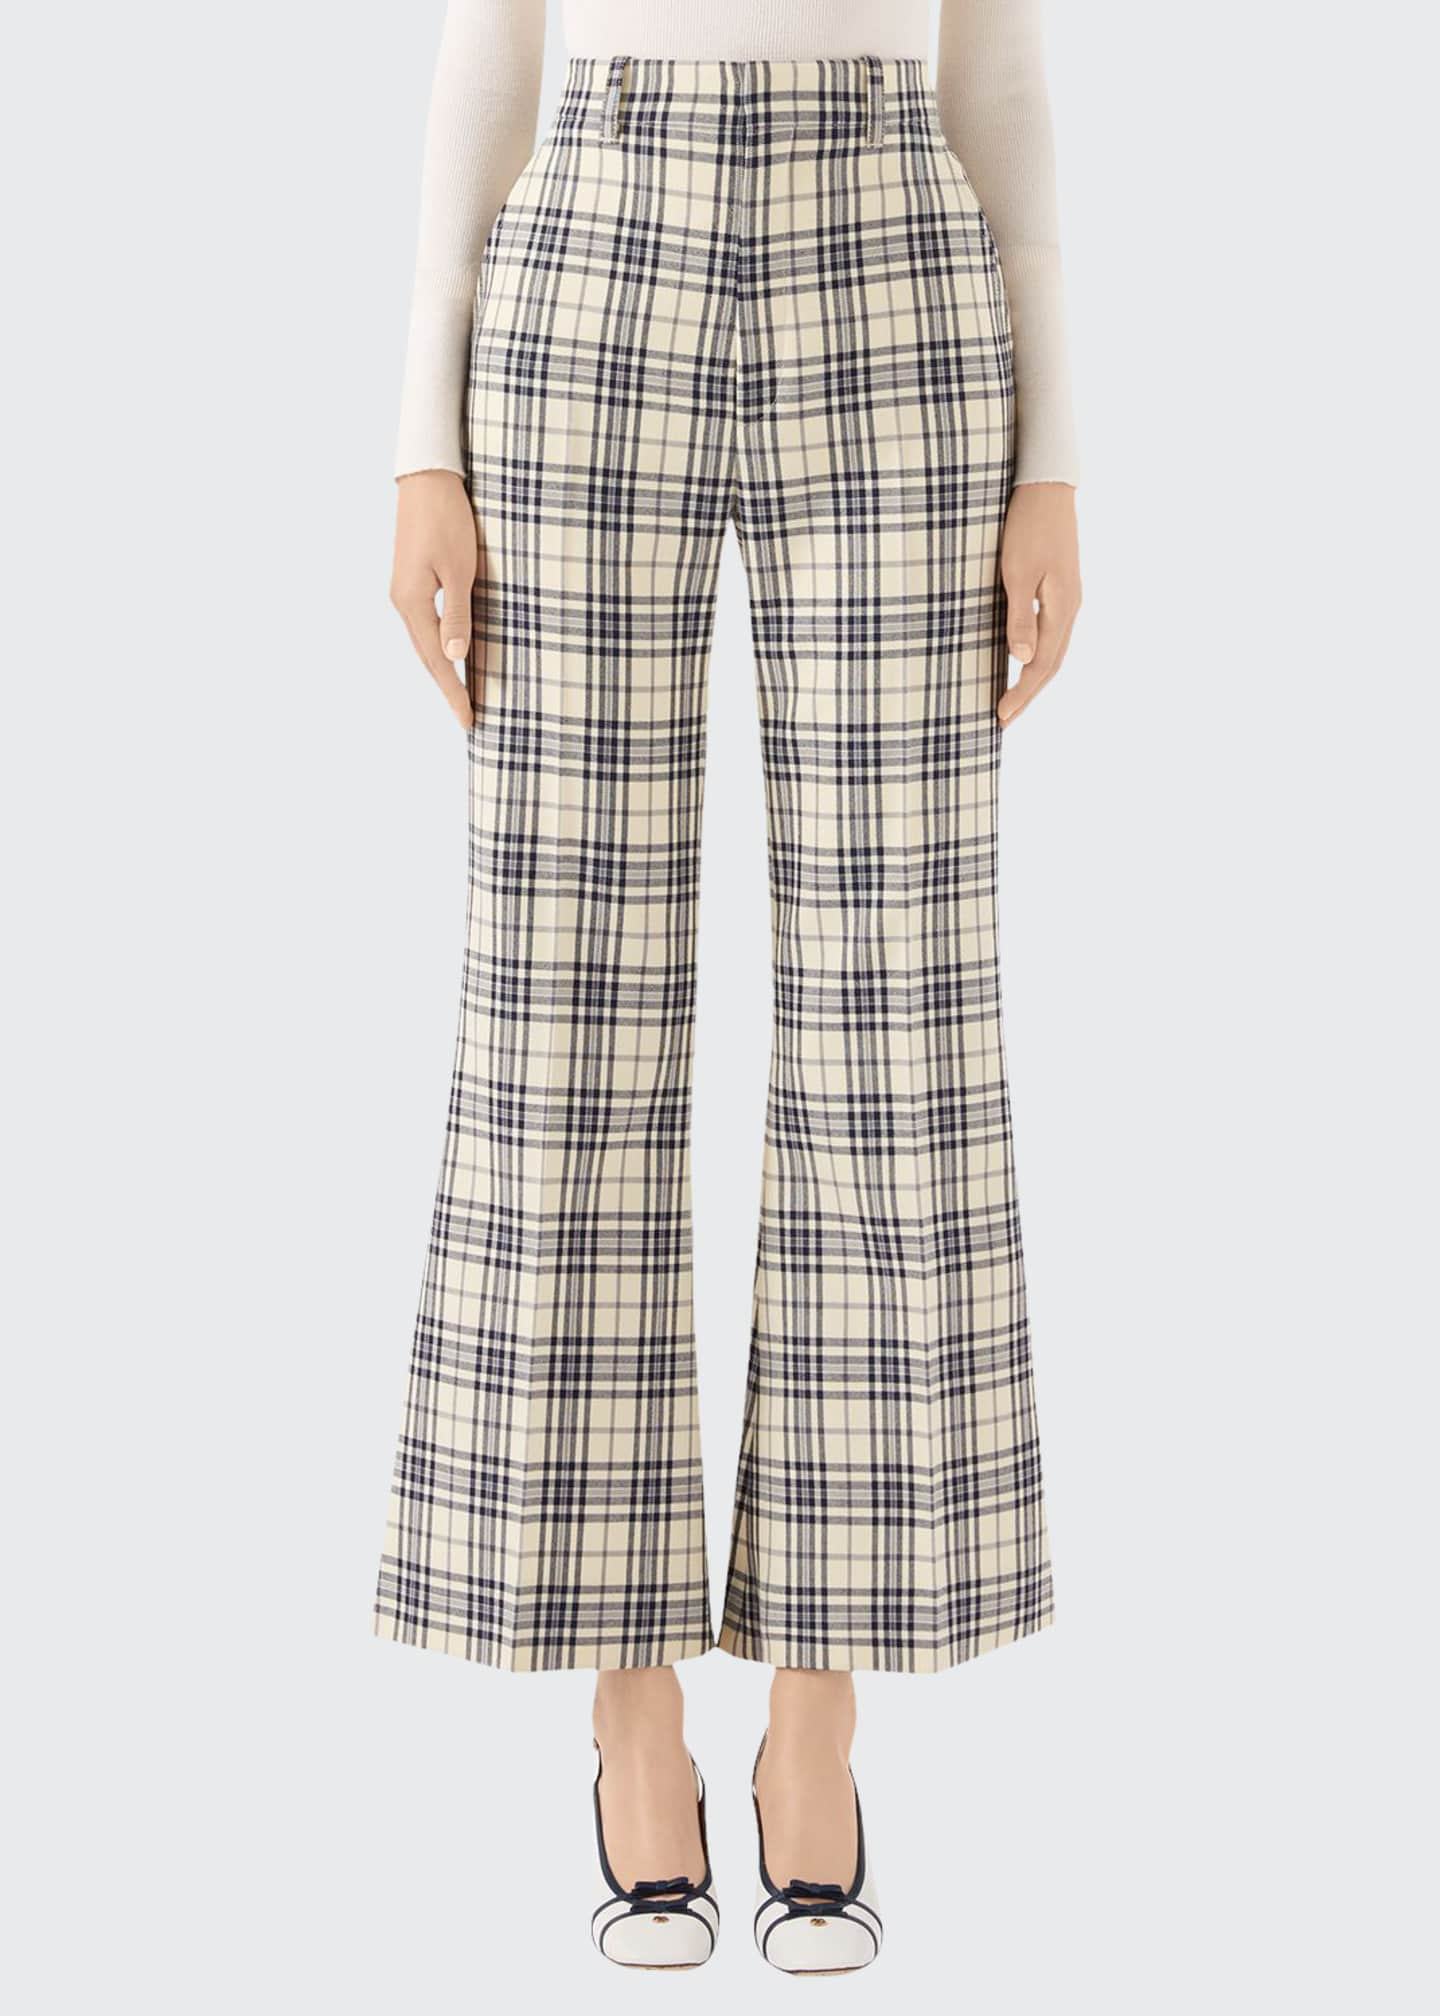 Gucci 70s Madras-Checked Wool Fare Pants